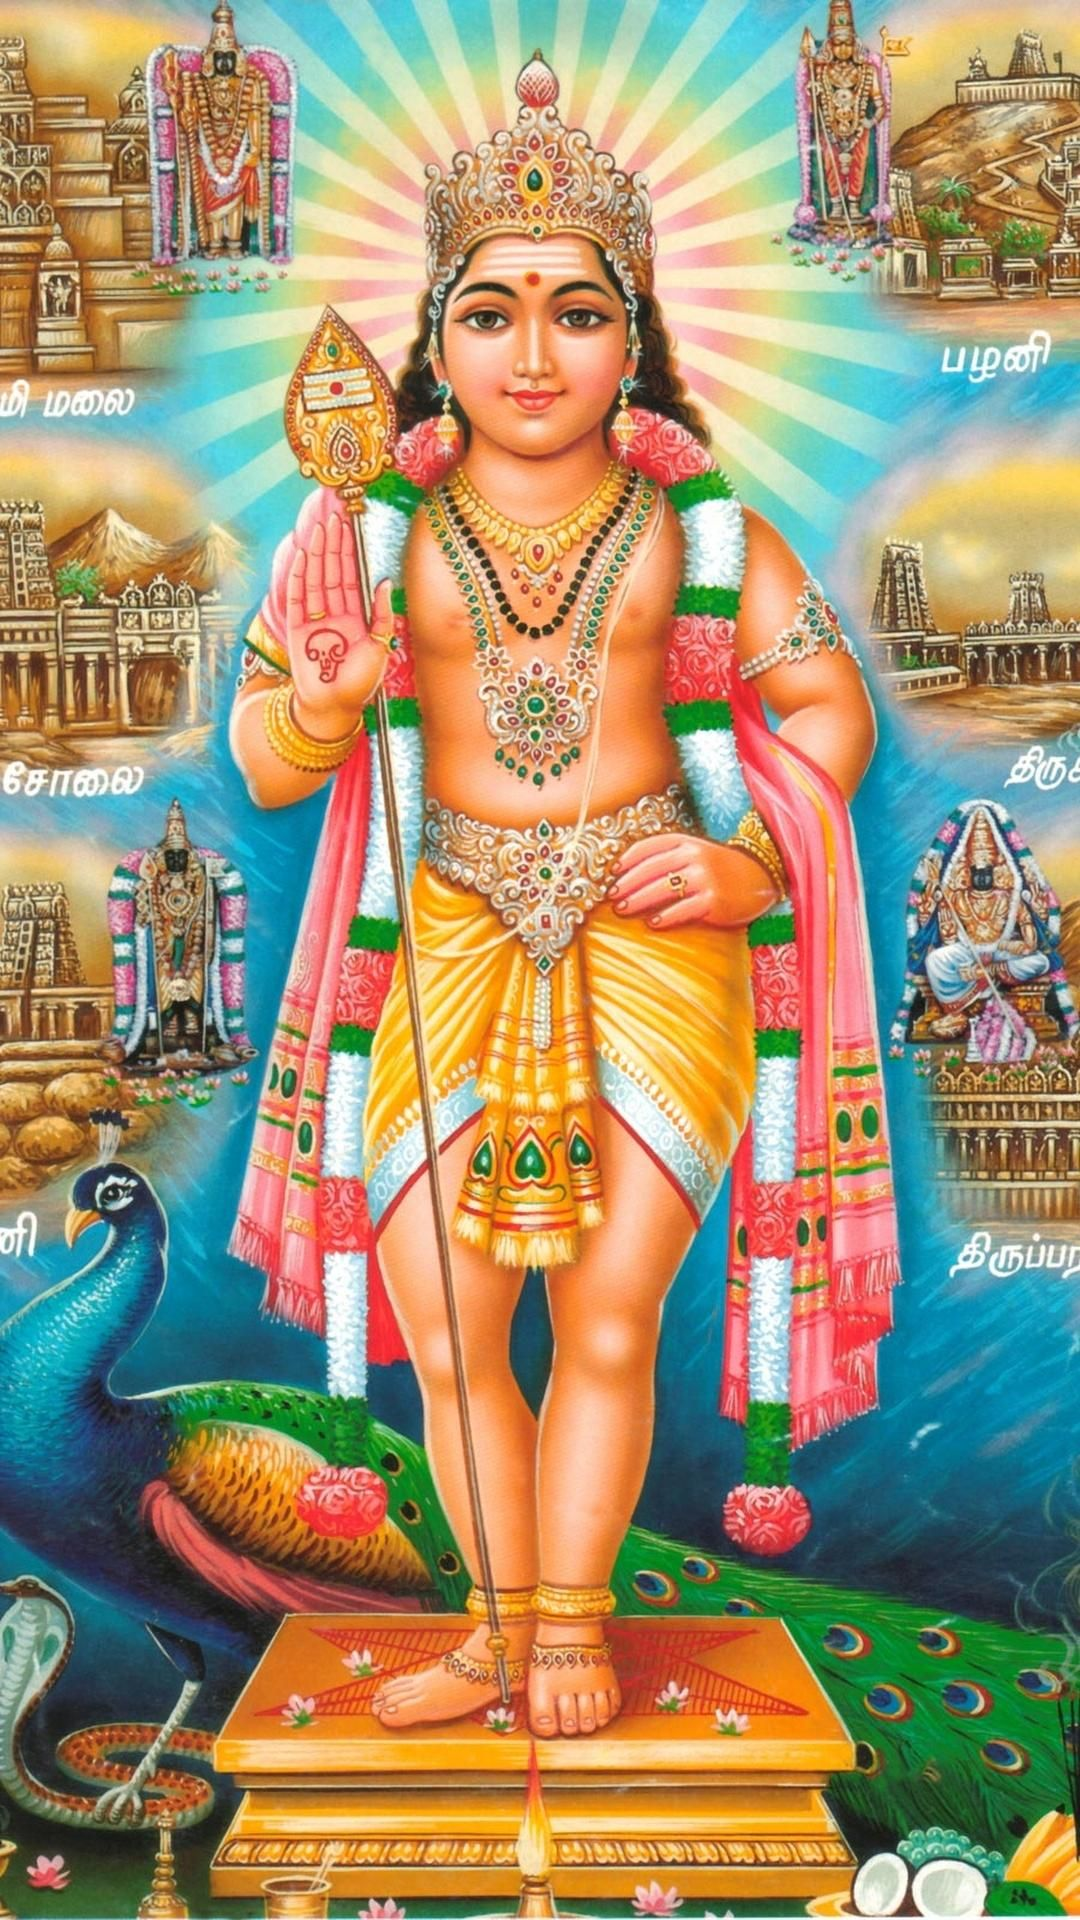 12 Of Luxury God Hd Wallpaper For Mobile 2k Lord Krishna Hd Wallpaper Hindu Gods Lord Vishnu Wallpapers